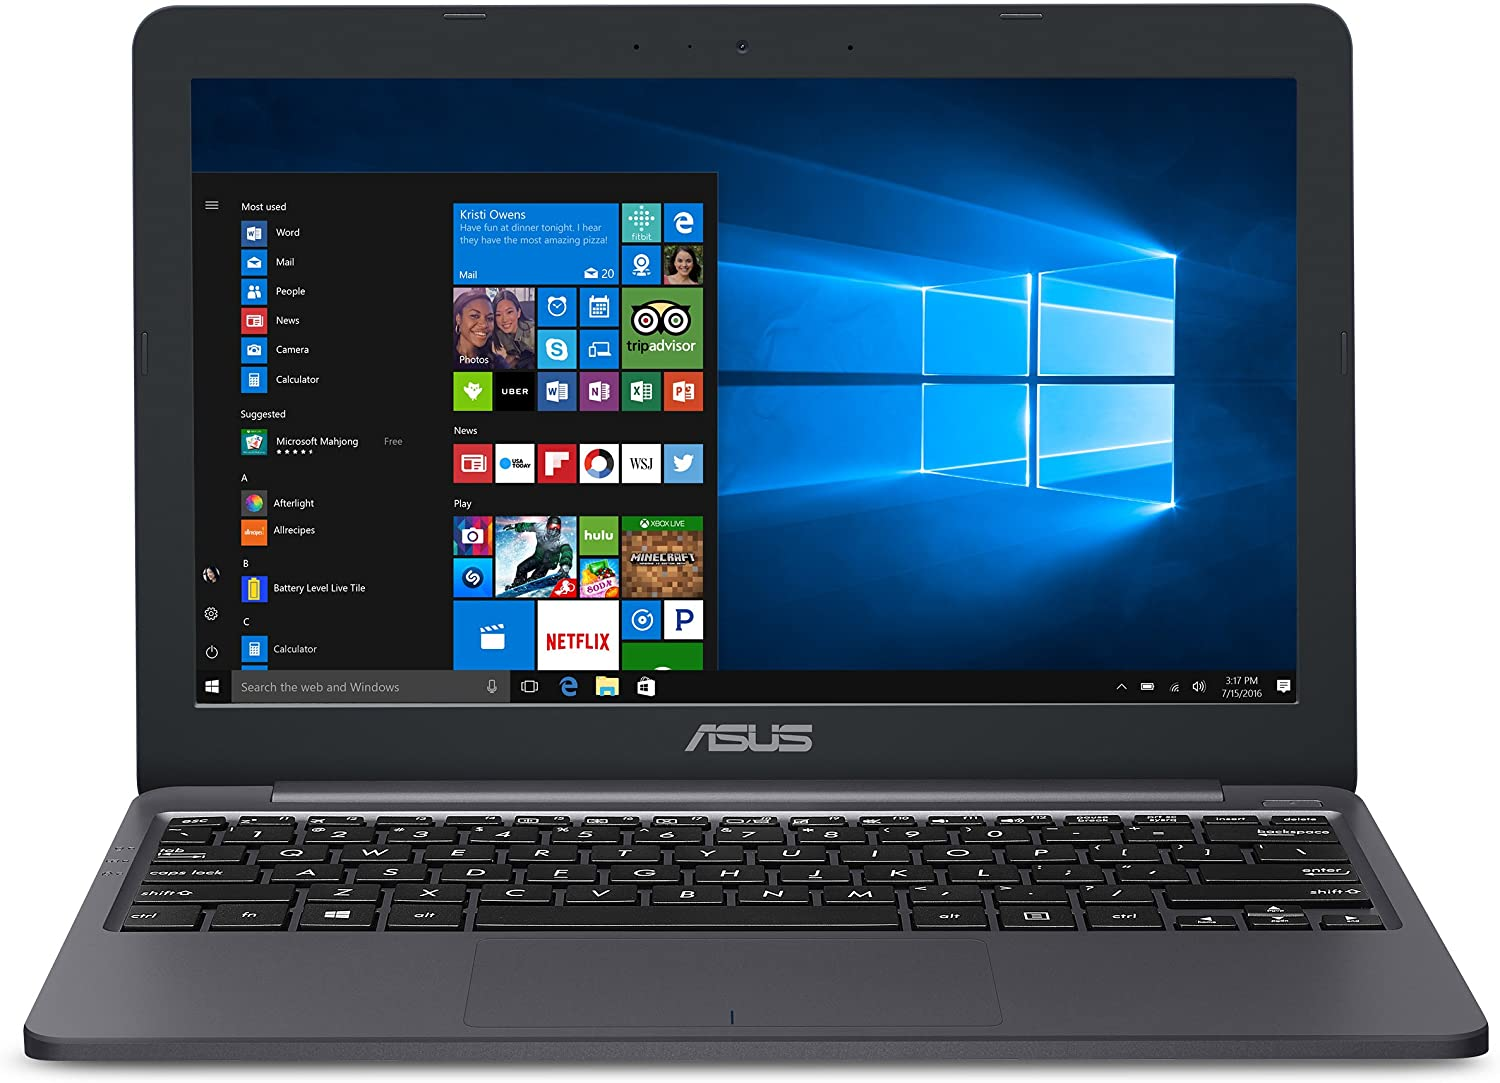 Asus VivoBook L203MA-DS04 Laptop Review